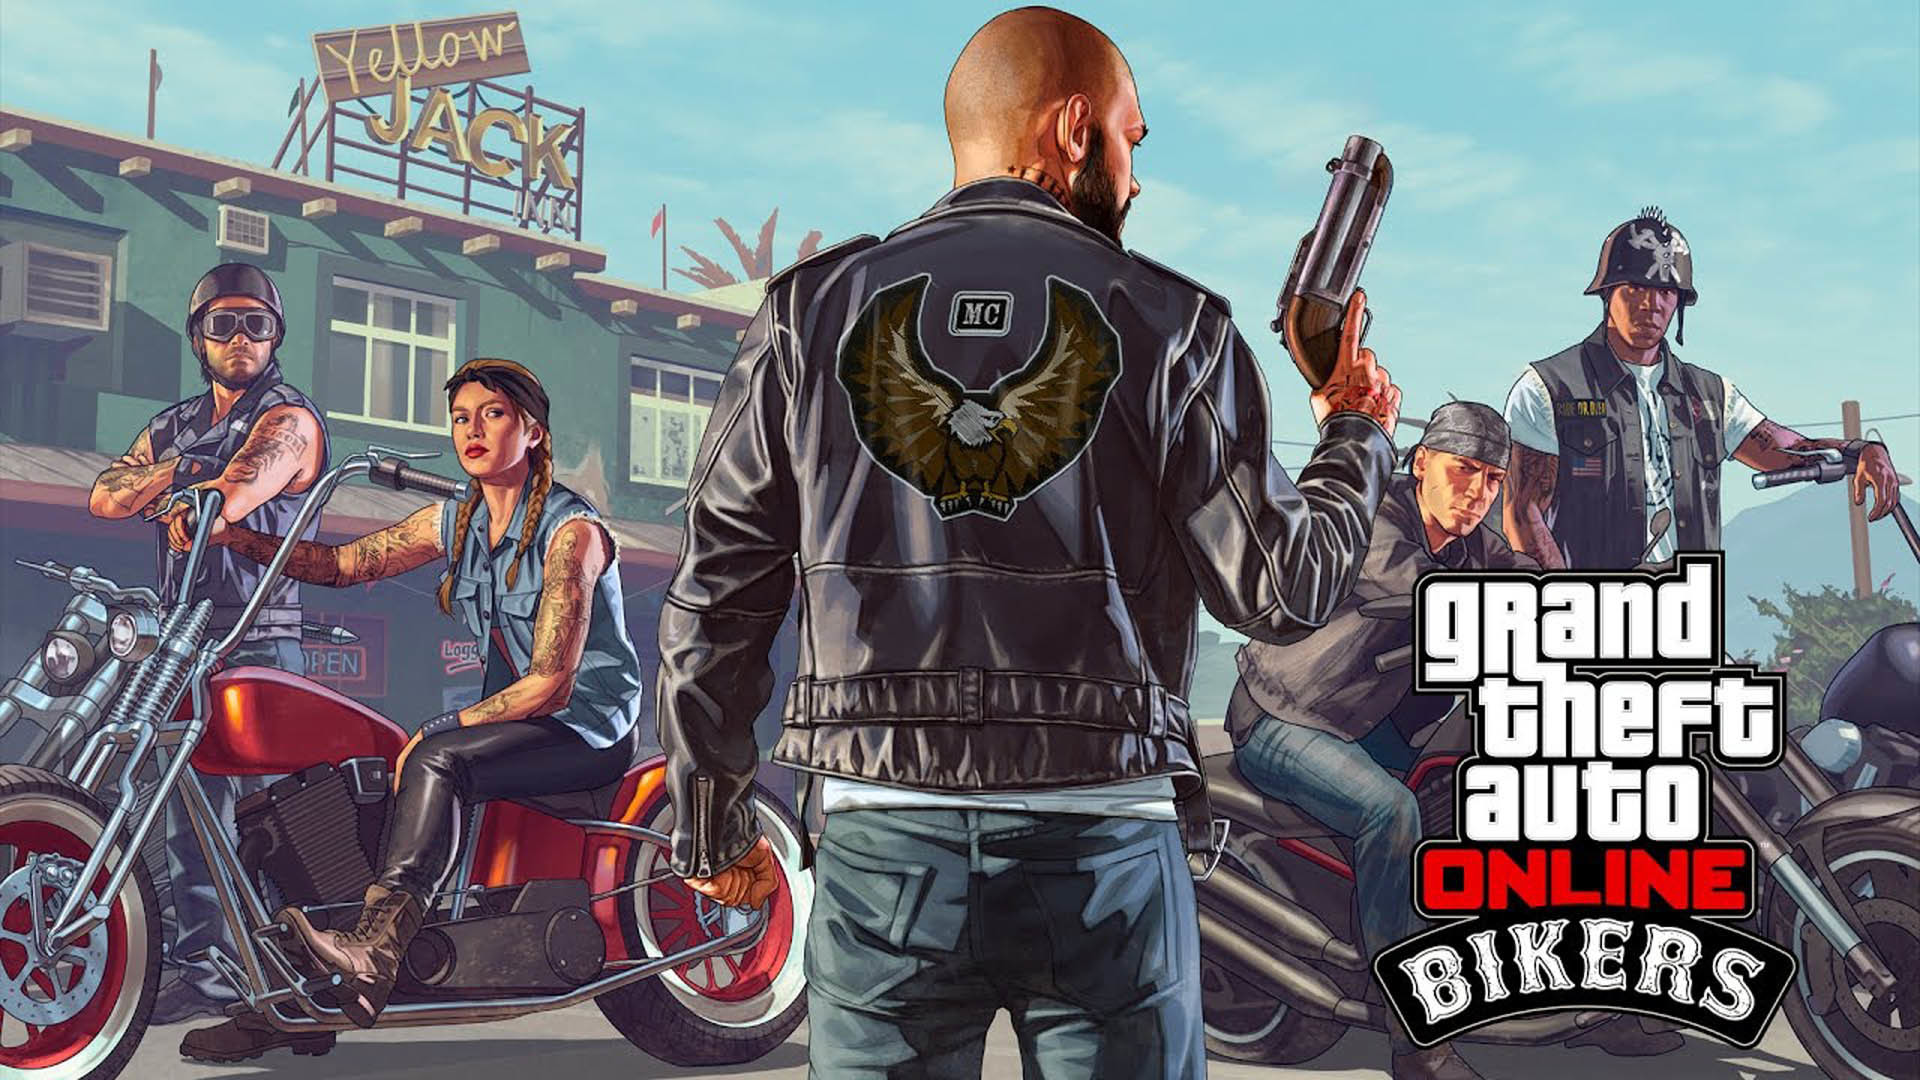 1920x1080 Official GTA 5 Artwork | Games to Play | Pinterest | Grand theft auto,  Grand thef auto and Video games